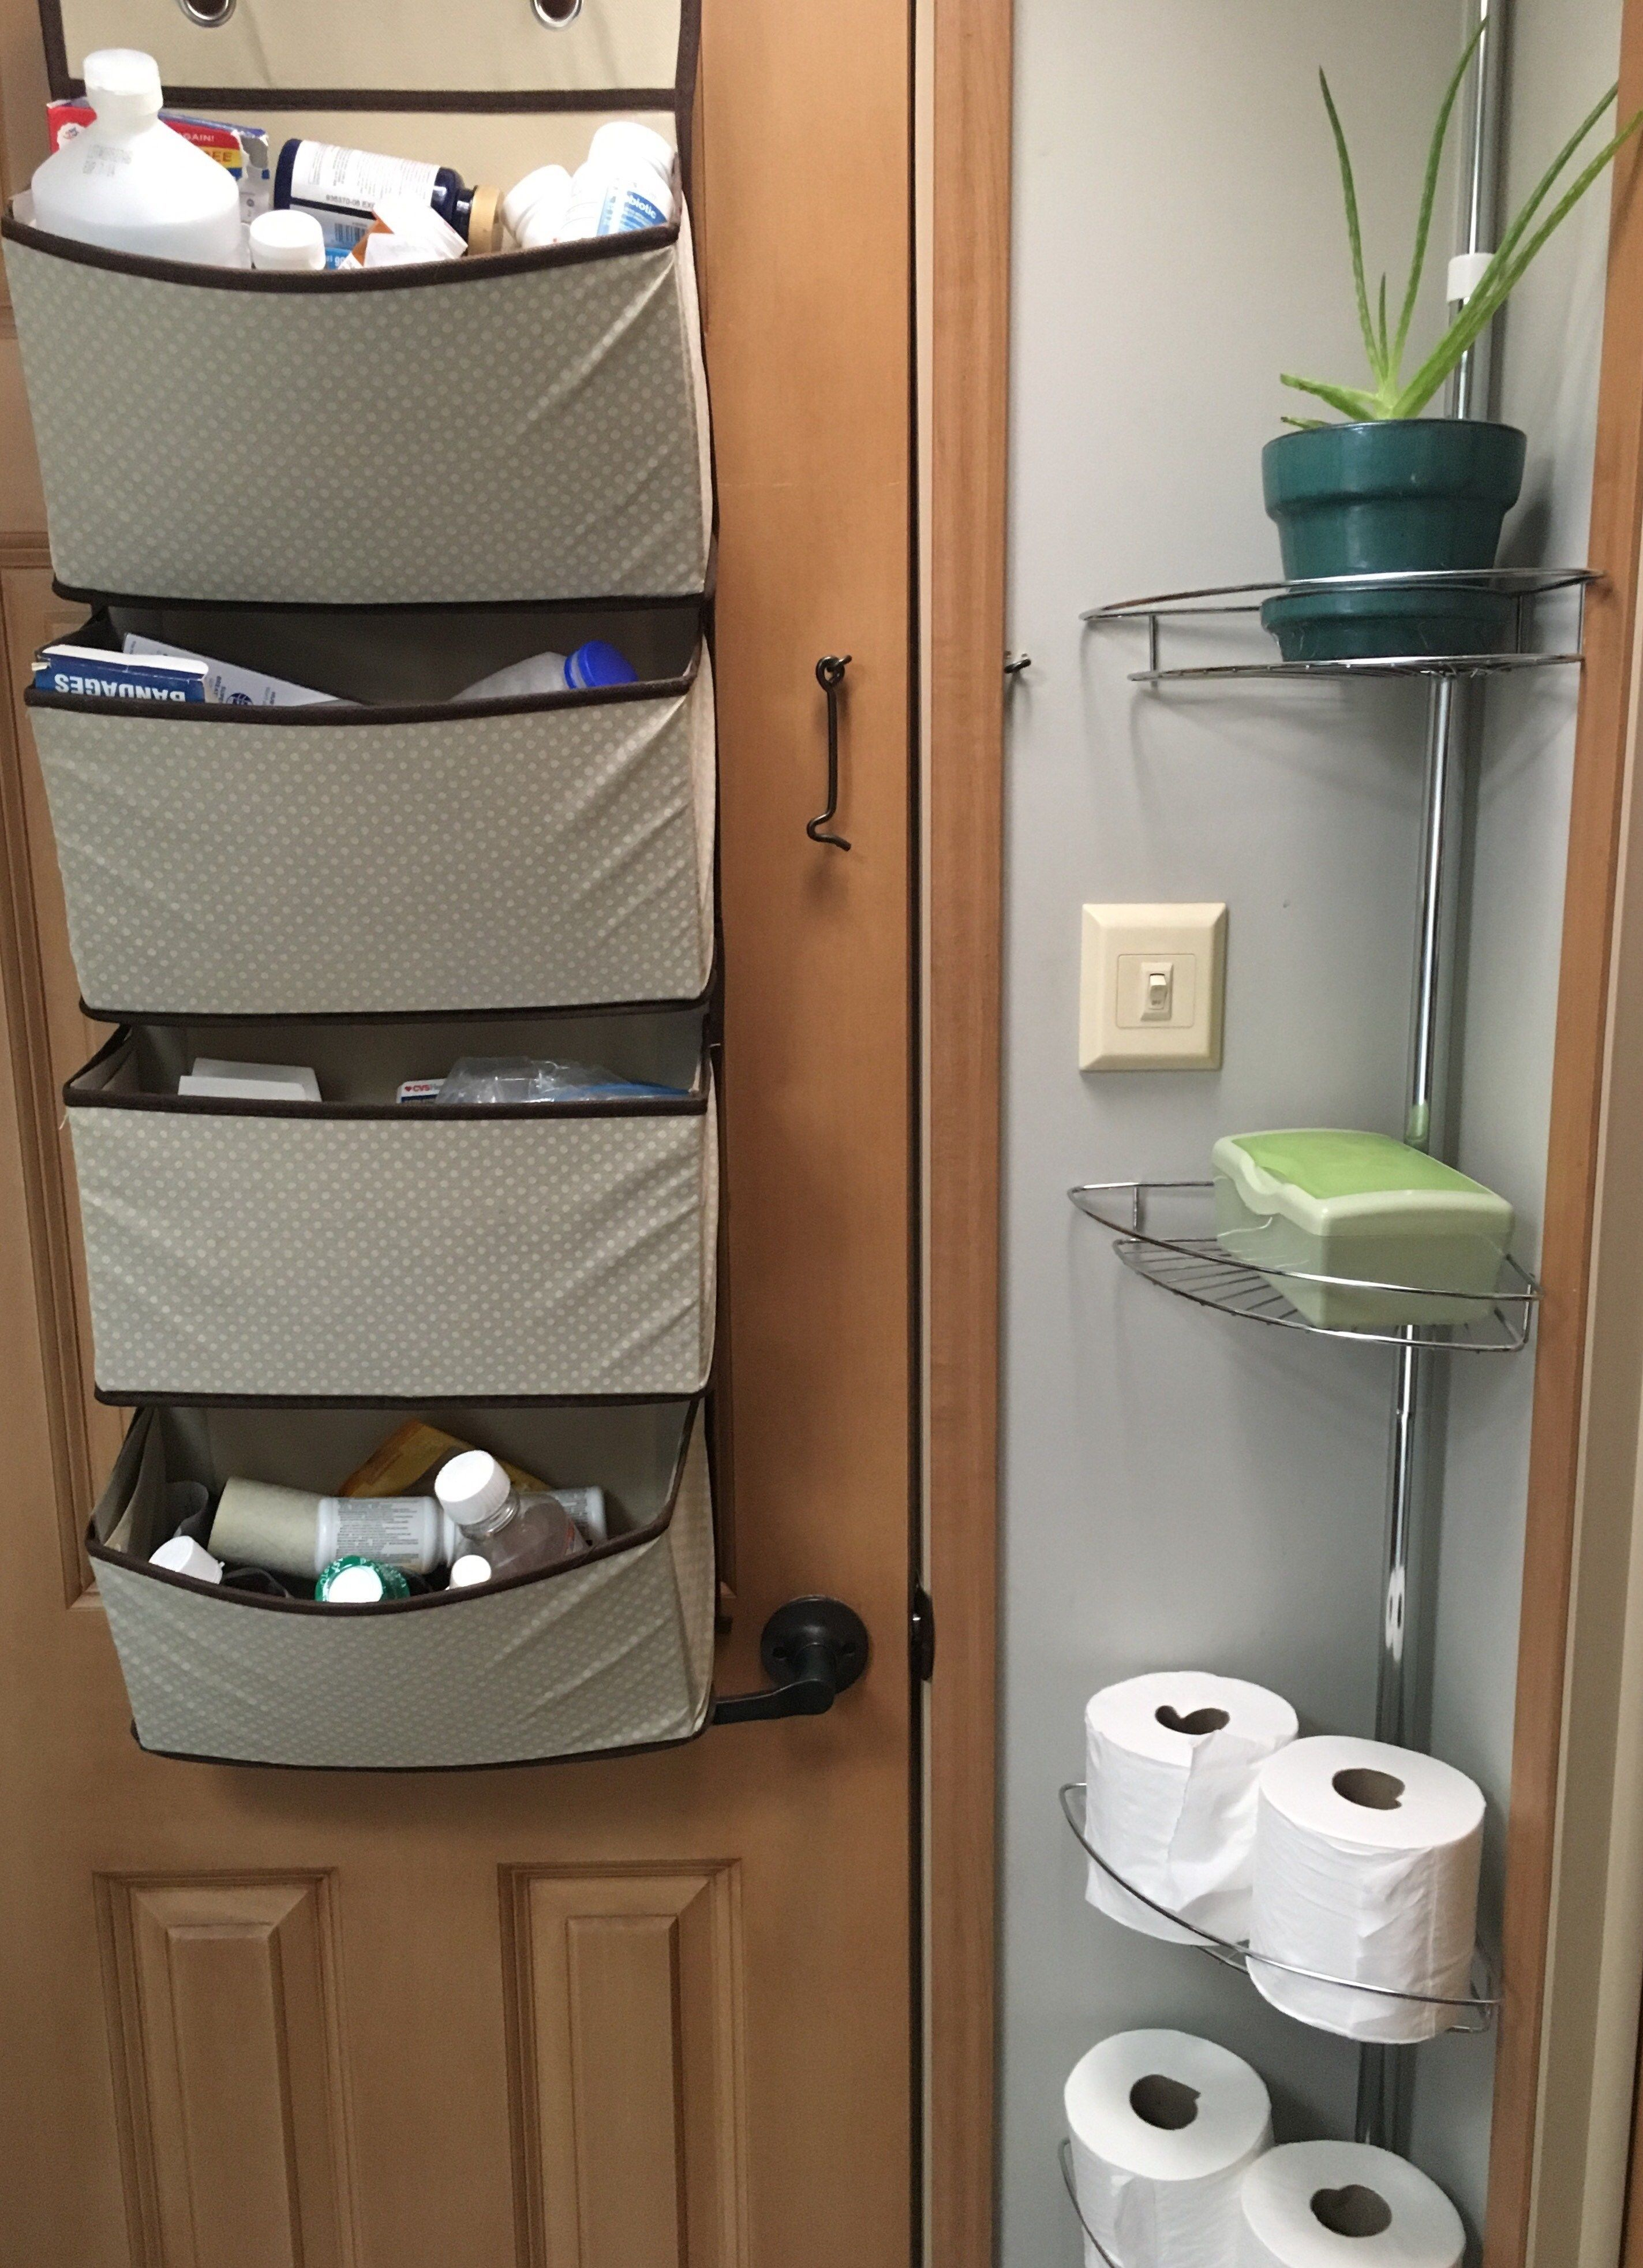 30 Brilliant Picture Of Clean Bathroom Rv Travel Trailer Organization In 2020 With Images Rv Living Organization Camper Organization Bathroom Storage Organization